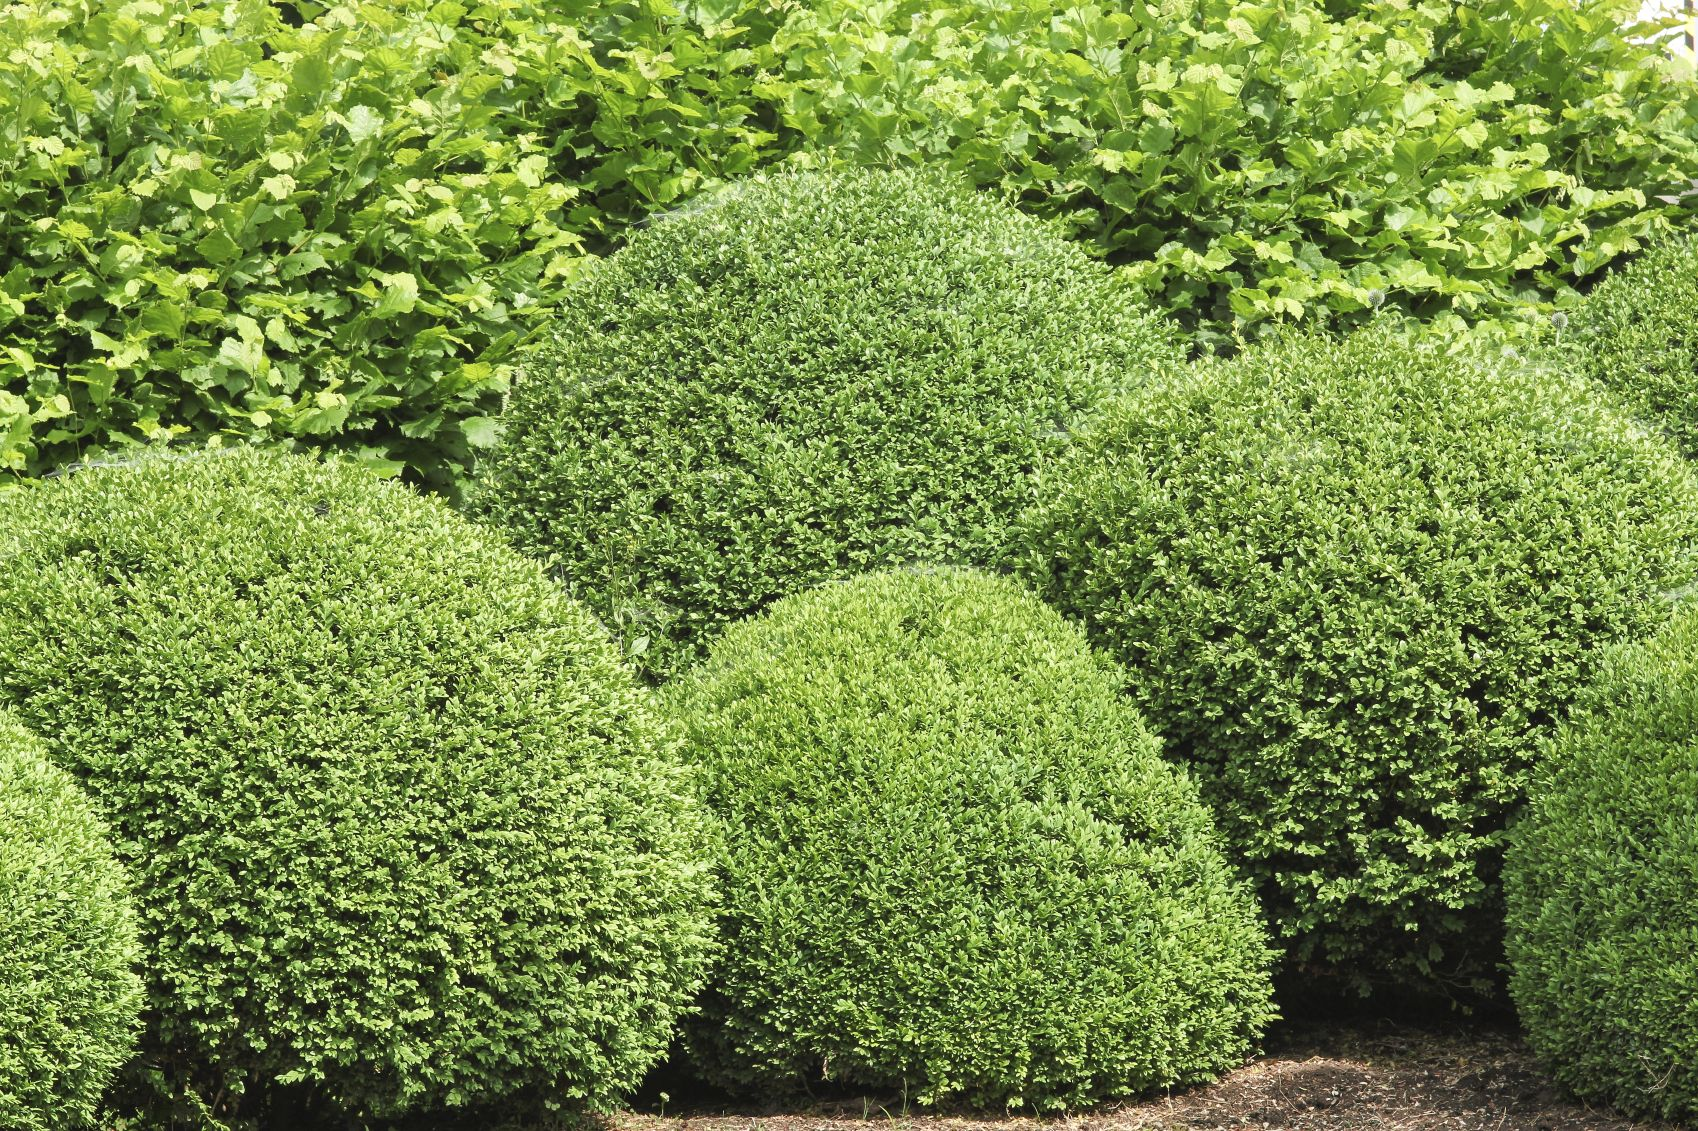 Boxwood Bush Types What Are Some Good Buxus Varieties To Grow Green Velvet Boxwood Shade Shrubs Box Wood Shrub